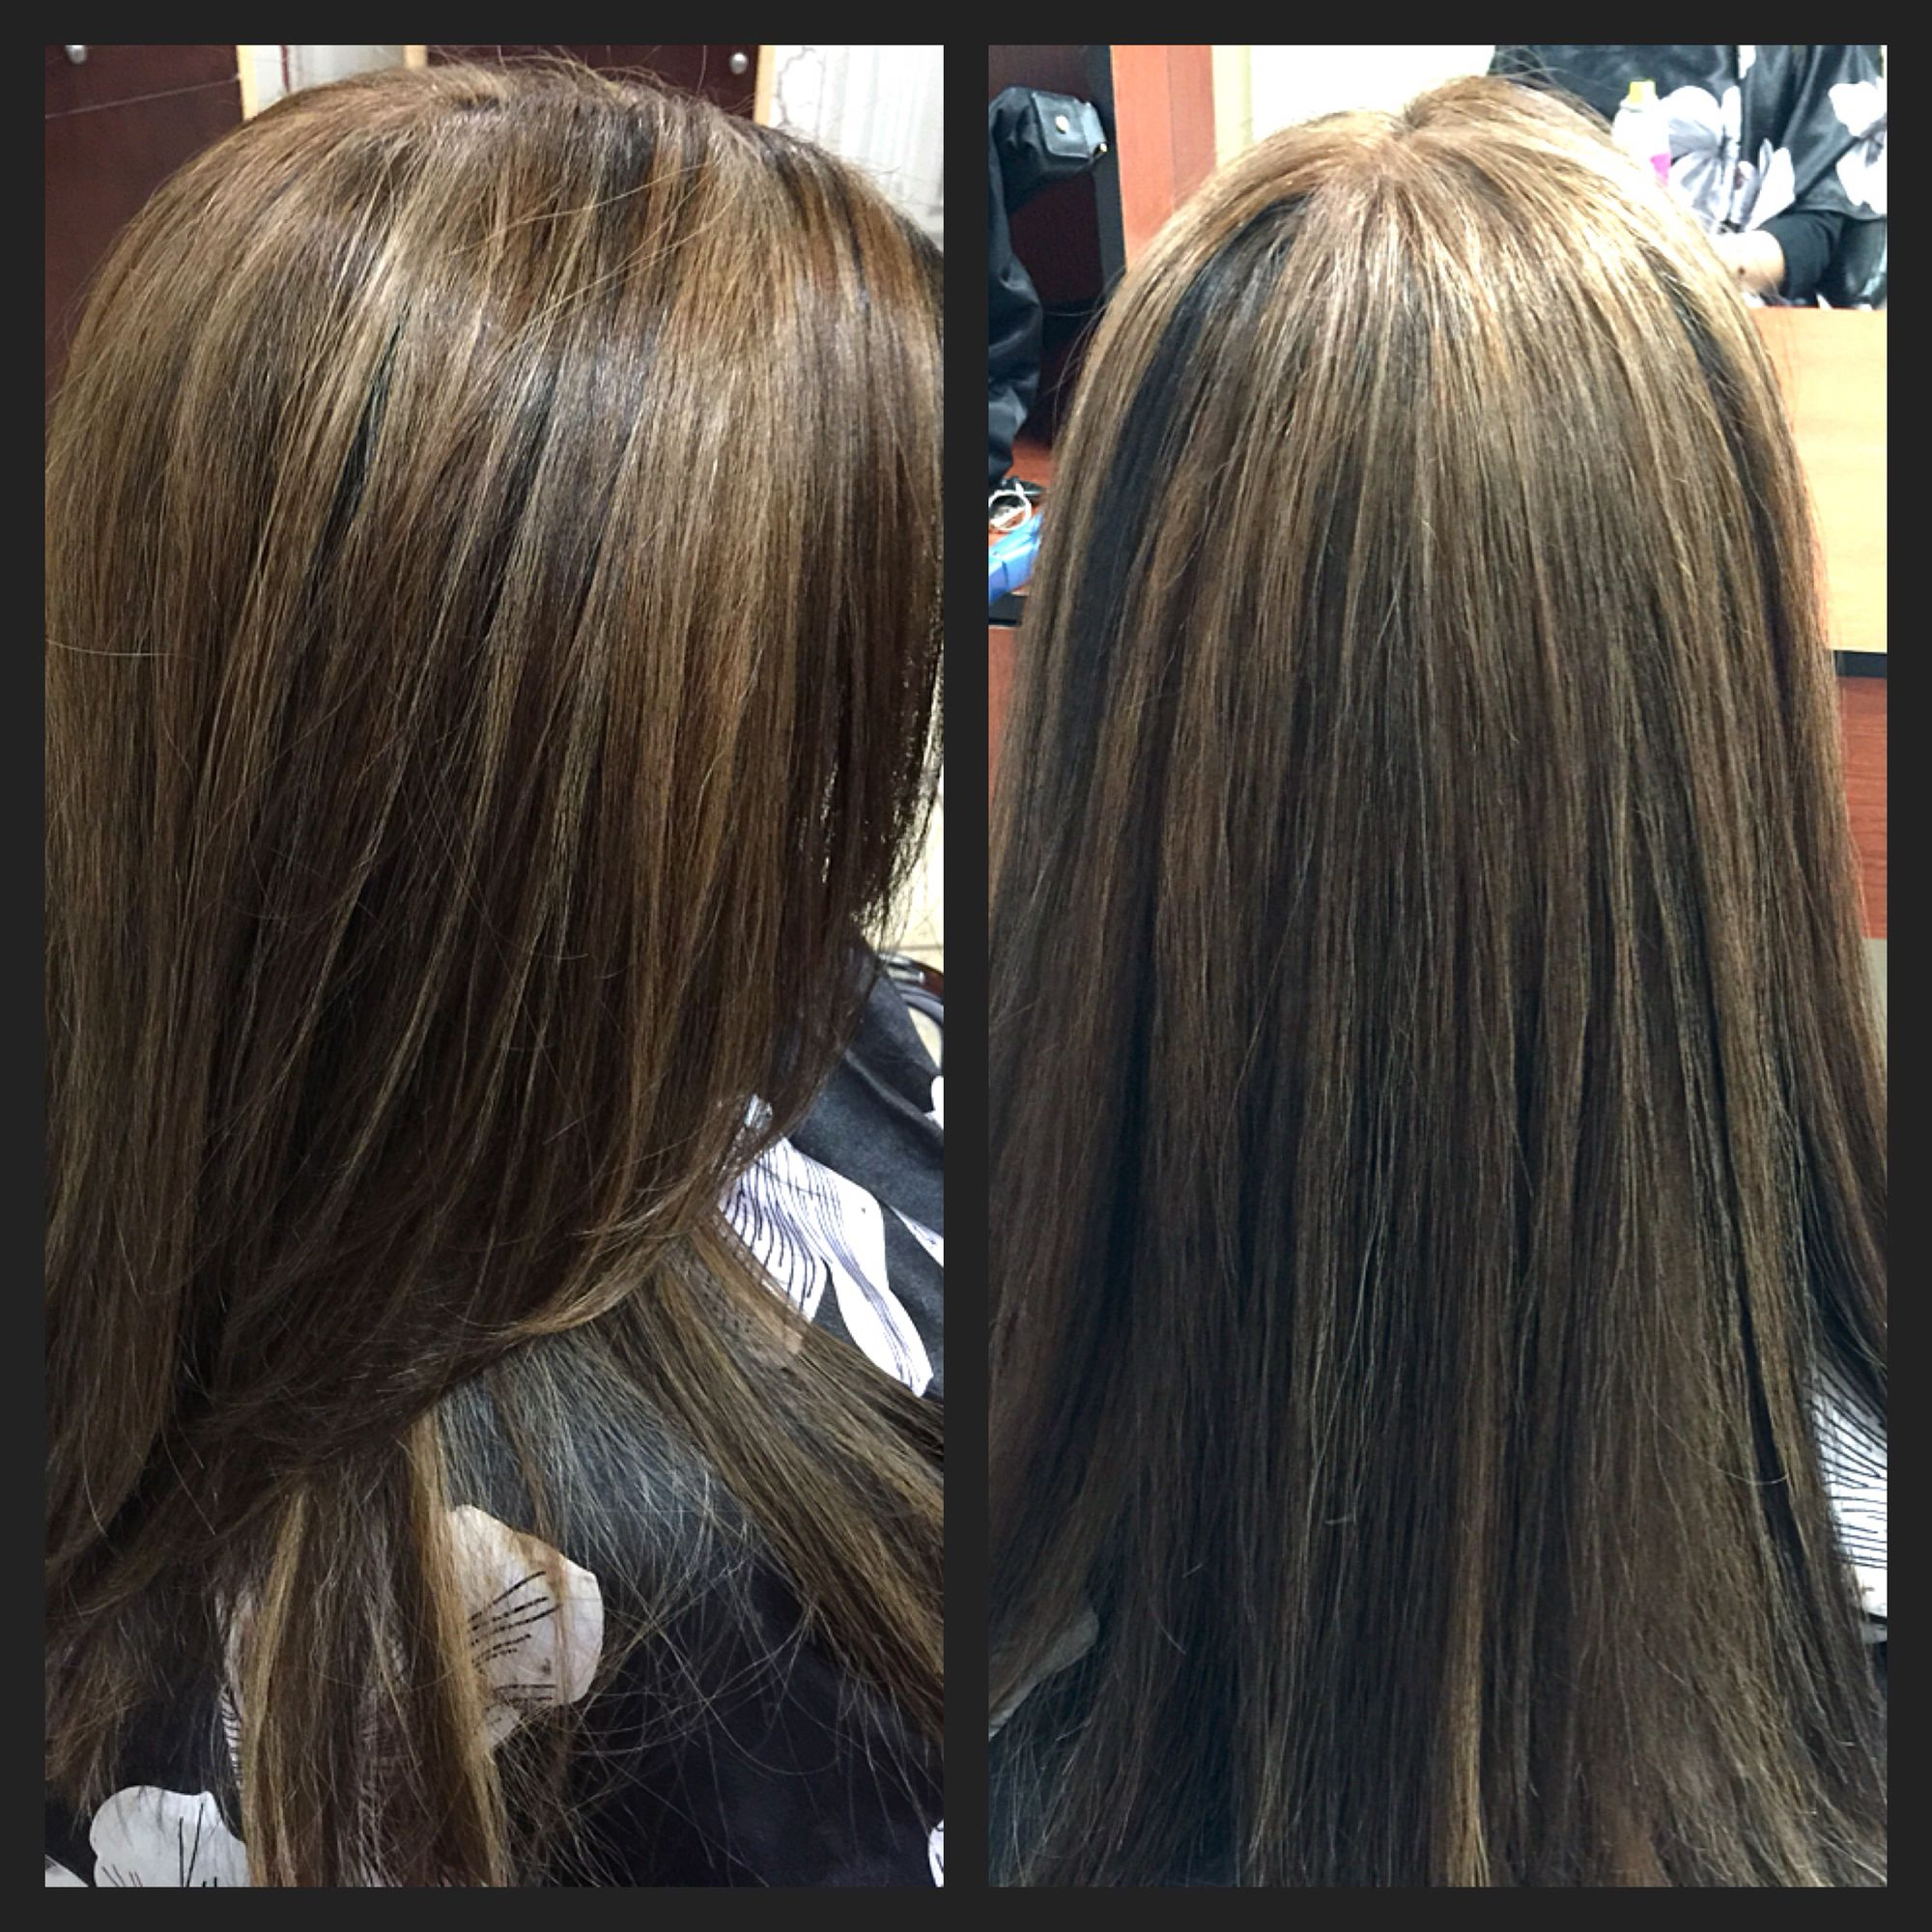 Naturally Black Hair Added Beige Blonde And Caramel Highlights All Over While Keeping Some Of Her Natural For Not Such A Harsh Re Hair Hair Styles Hair Beauty